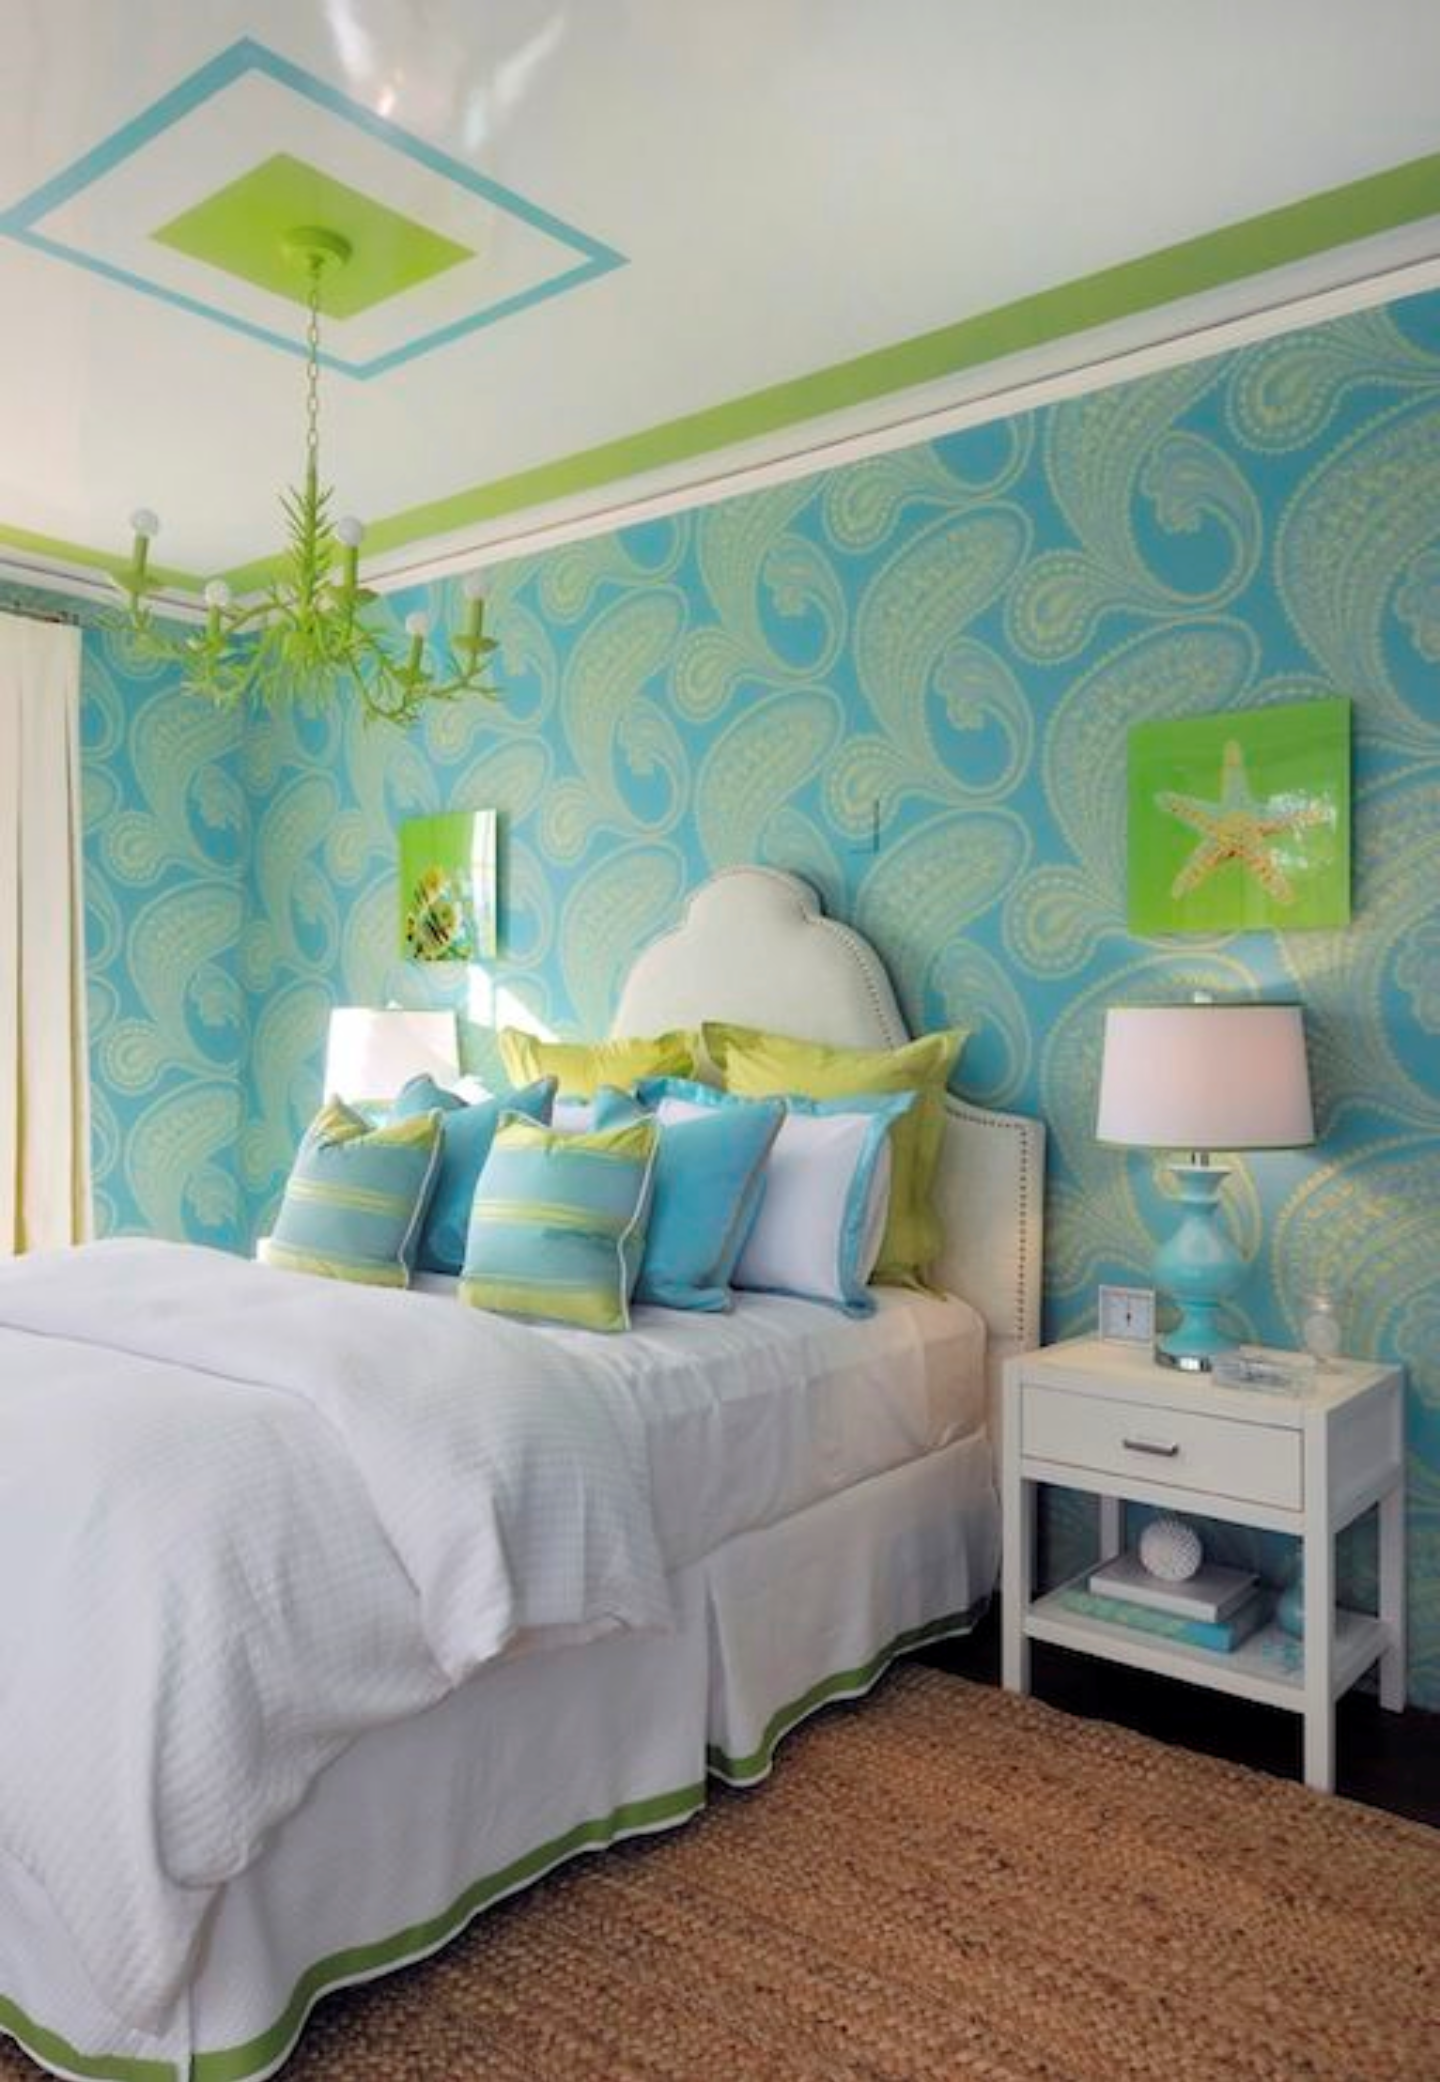 Bedroom colors blue and green - Lovely Teen Girls Bedroom In Green And Blue With Cool Green Chandelier With White Furniture